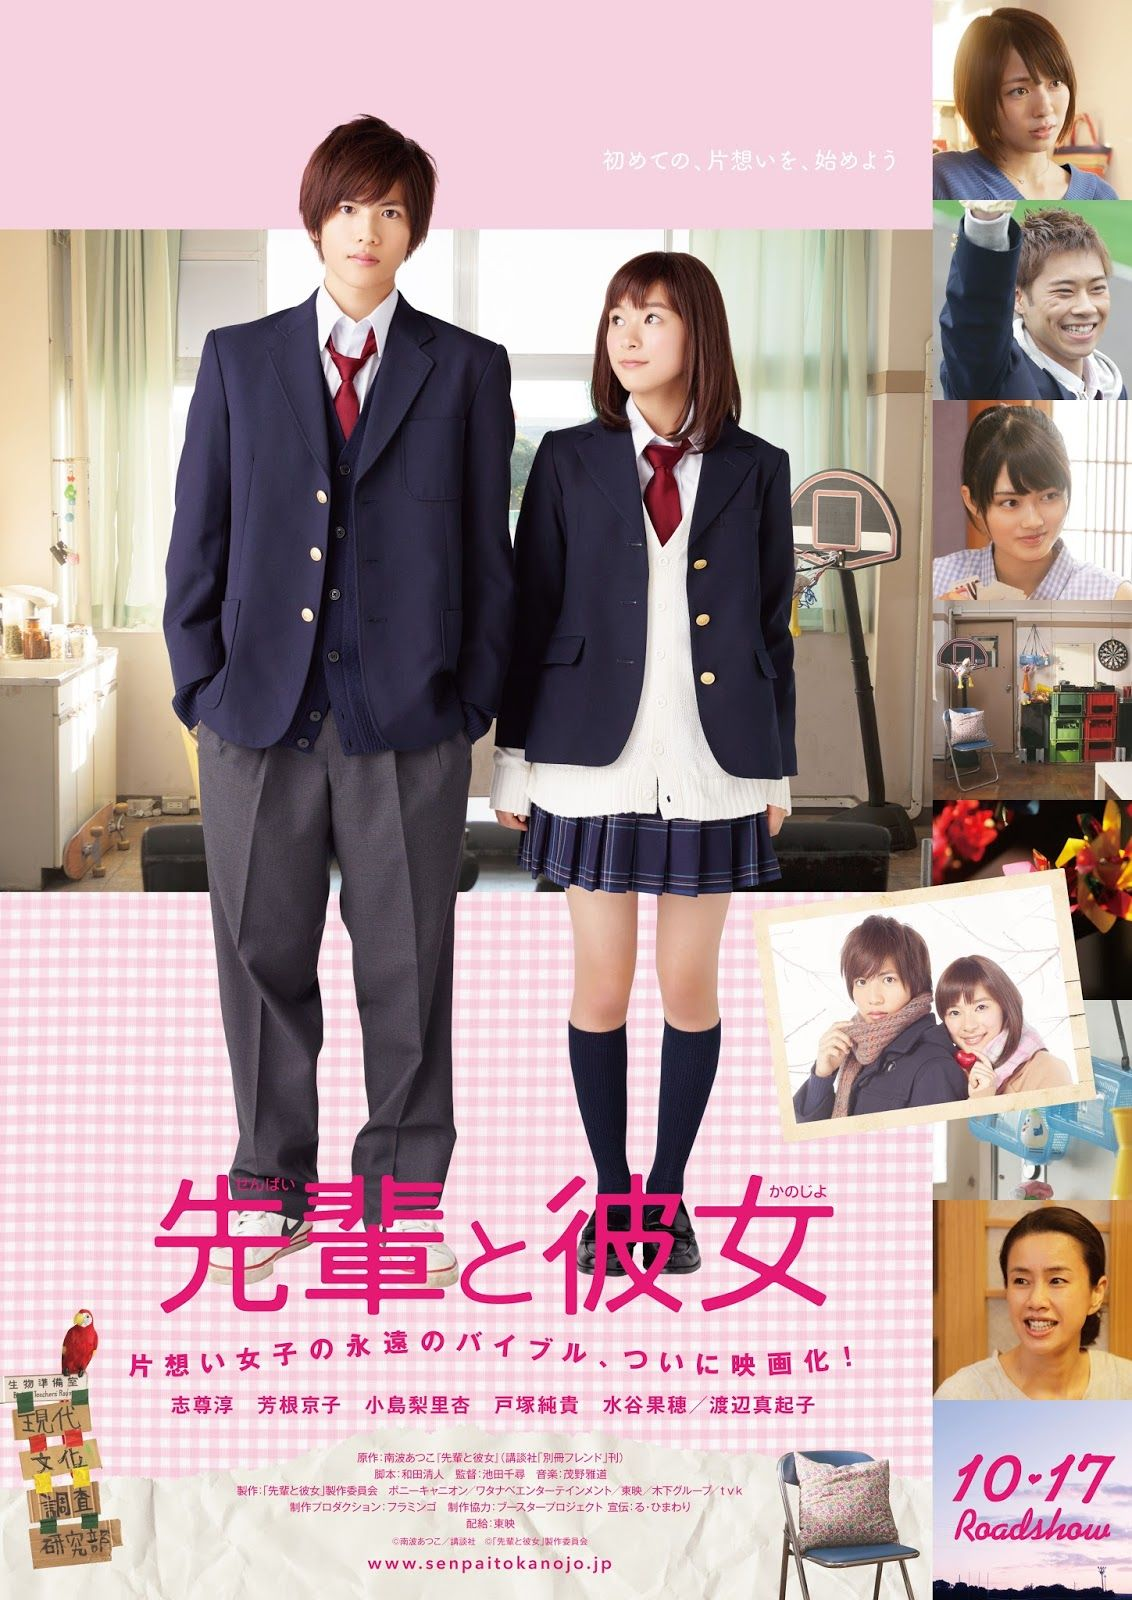 Senpai to kanojo live action subtitle indonesia